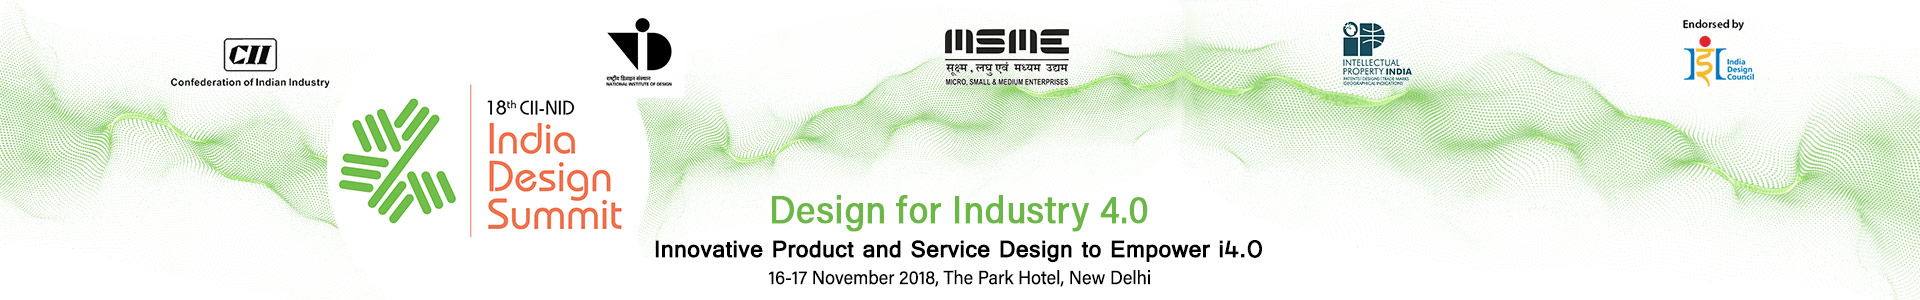 india-design-summit-2018-inner-banner